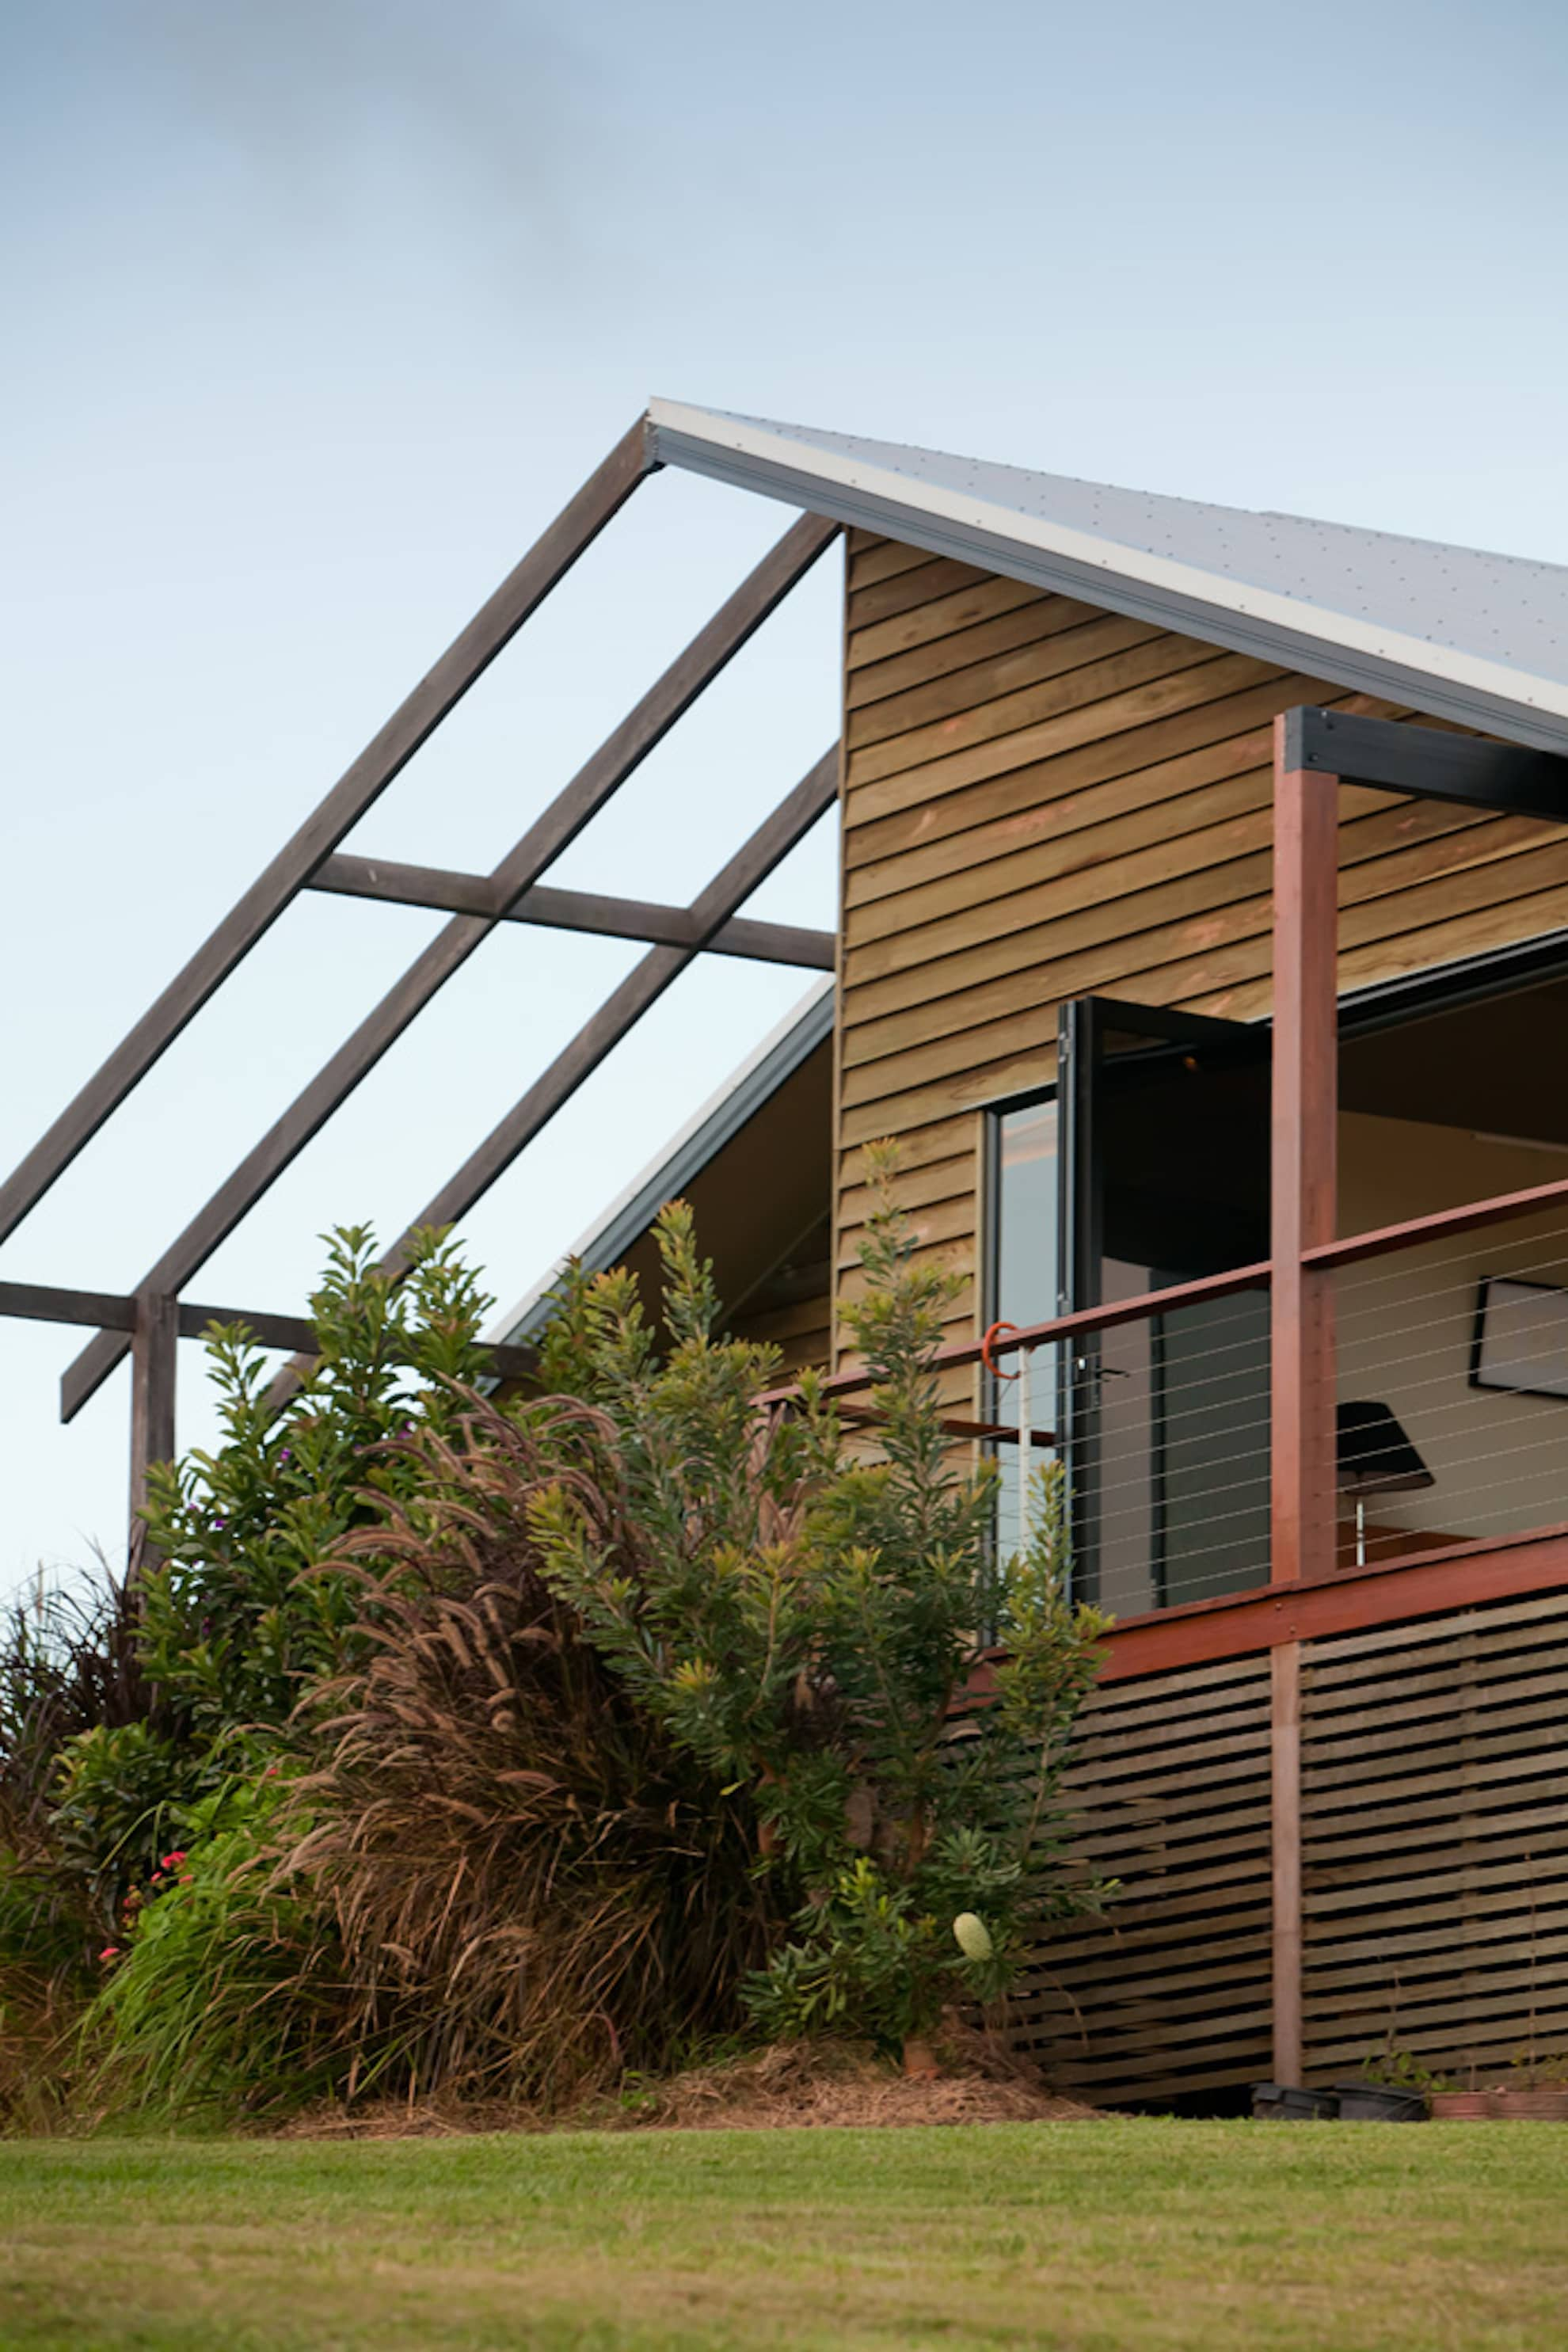 Kenilworth House project by mdesign, a building design practice that operates on the Sunshine Coast.